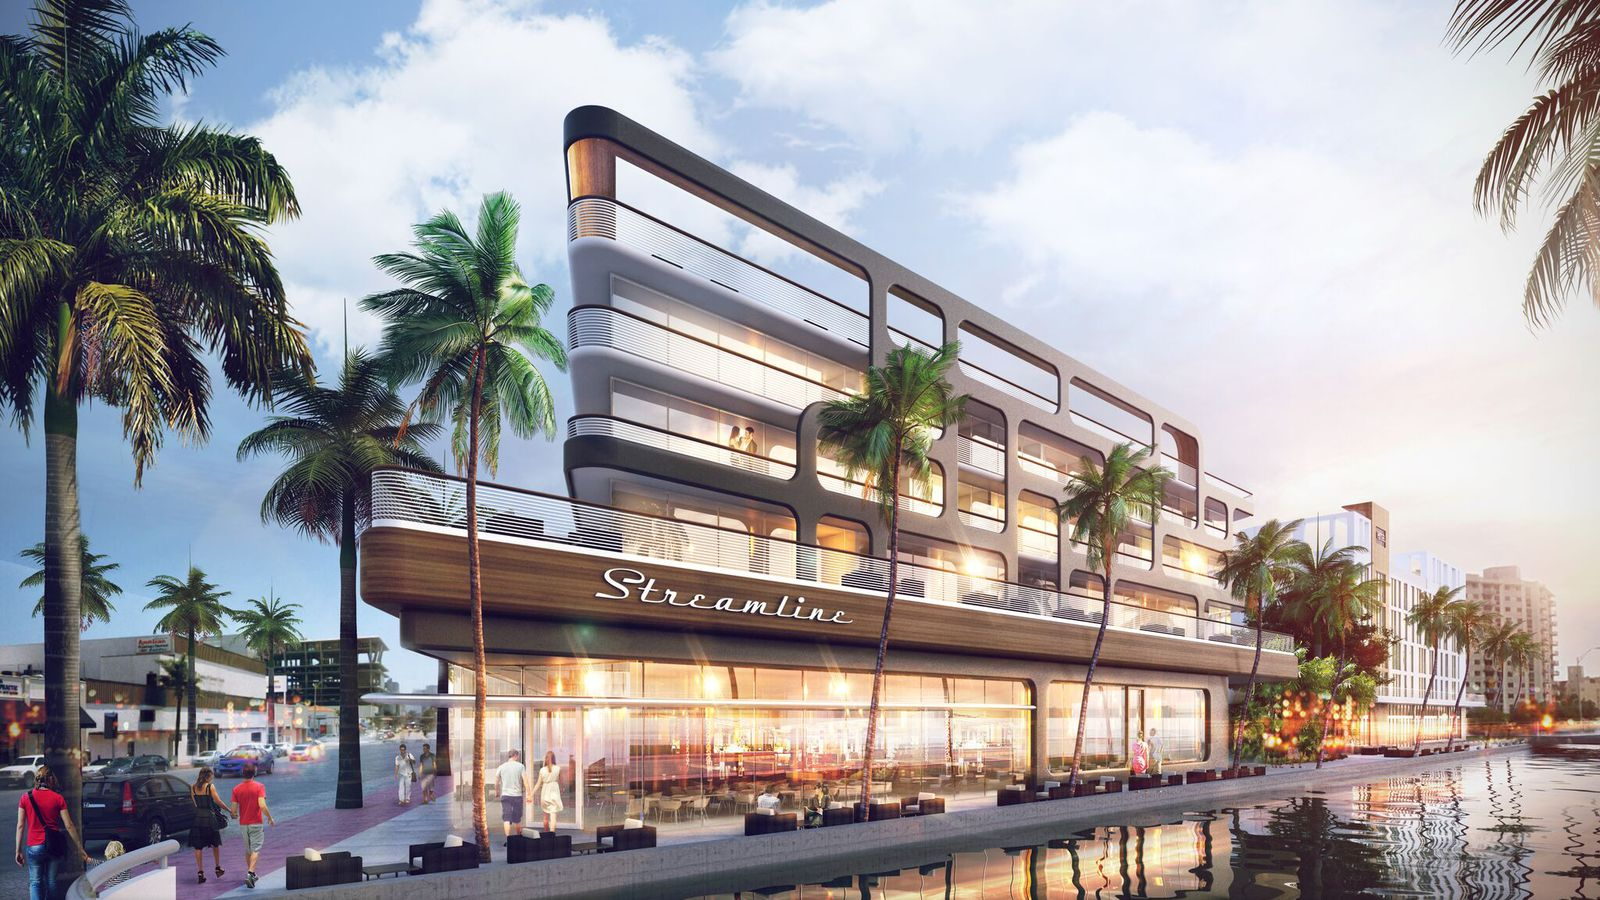 Hotel Palomar South Beach In Sunset Harbour To Open In